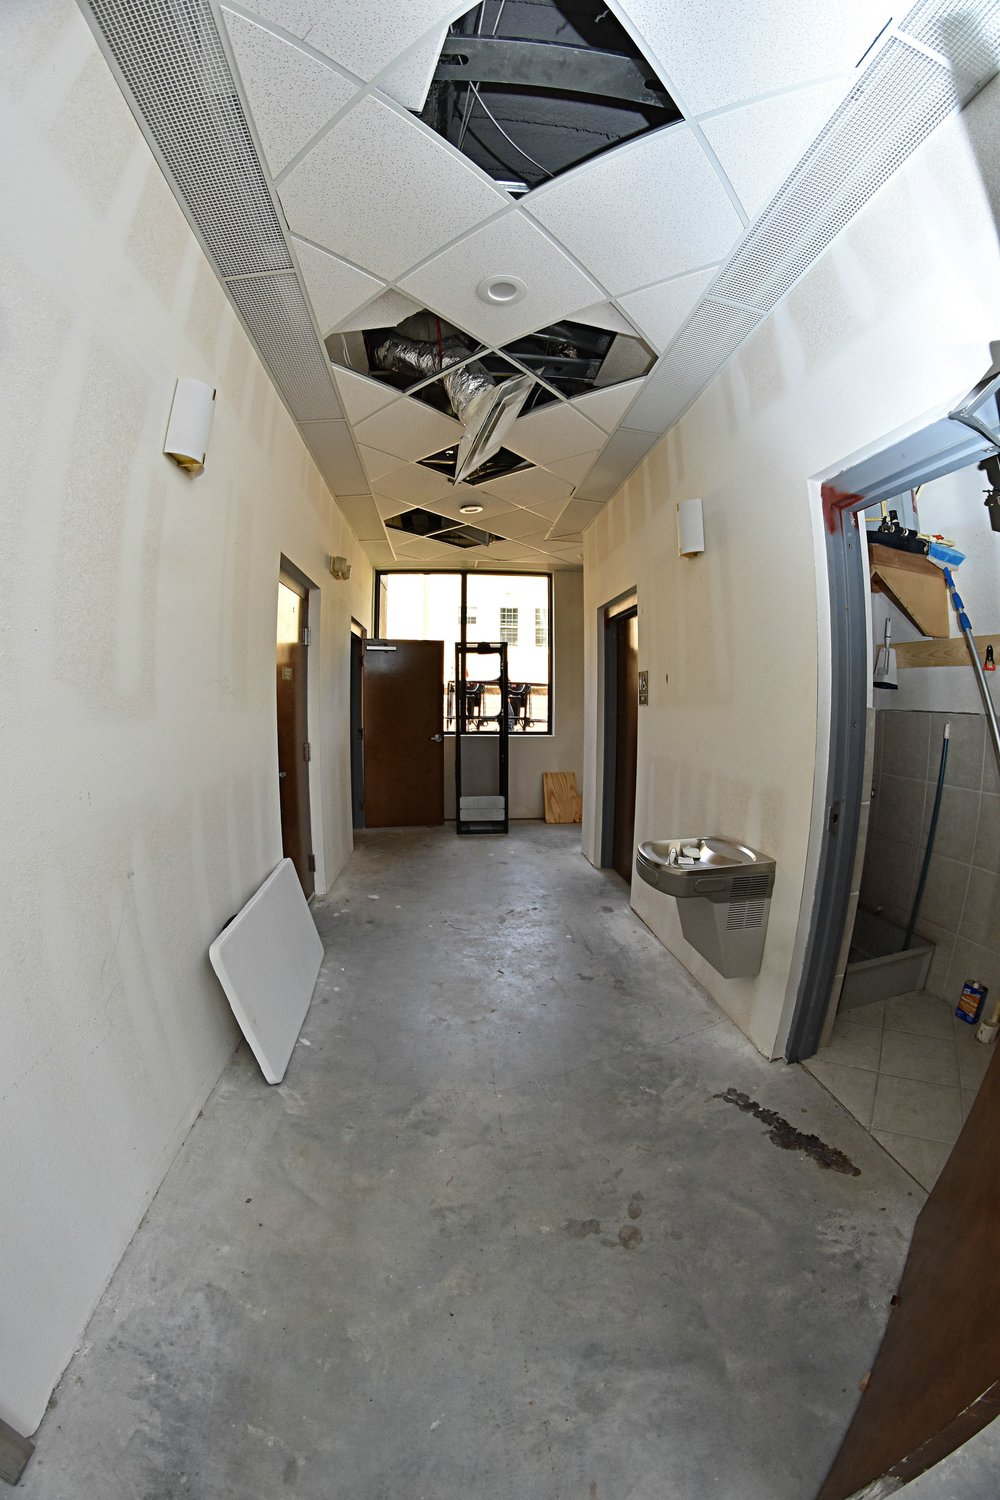 1st Floor Lobby   Restroom hallway with view all the way to the back of the building.